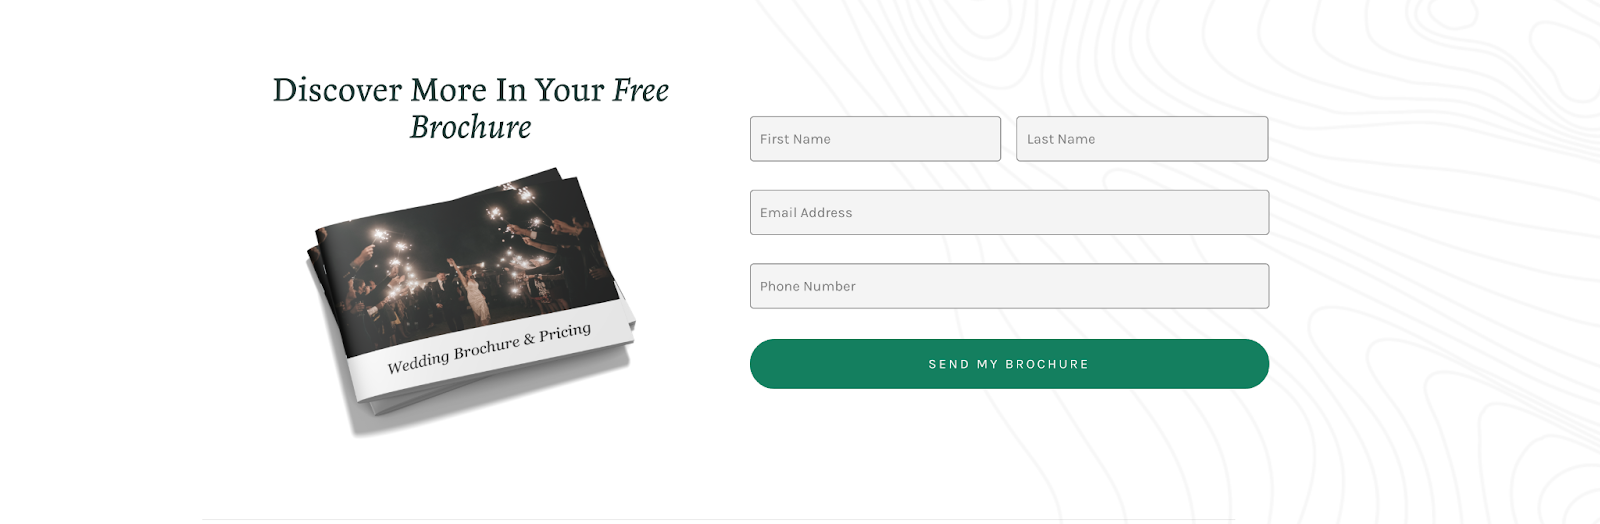 wedding venue website call to action: Get your free brochure 2